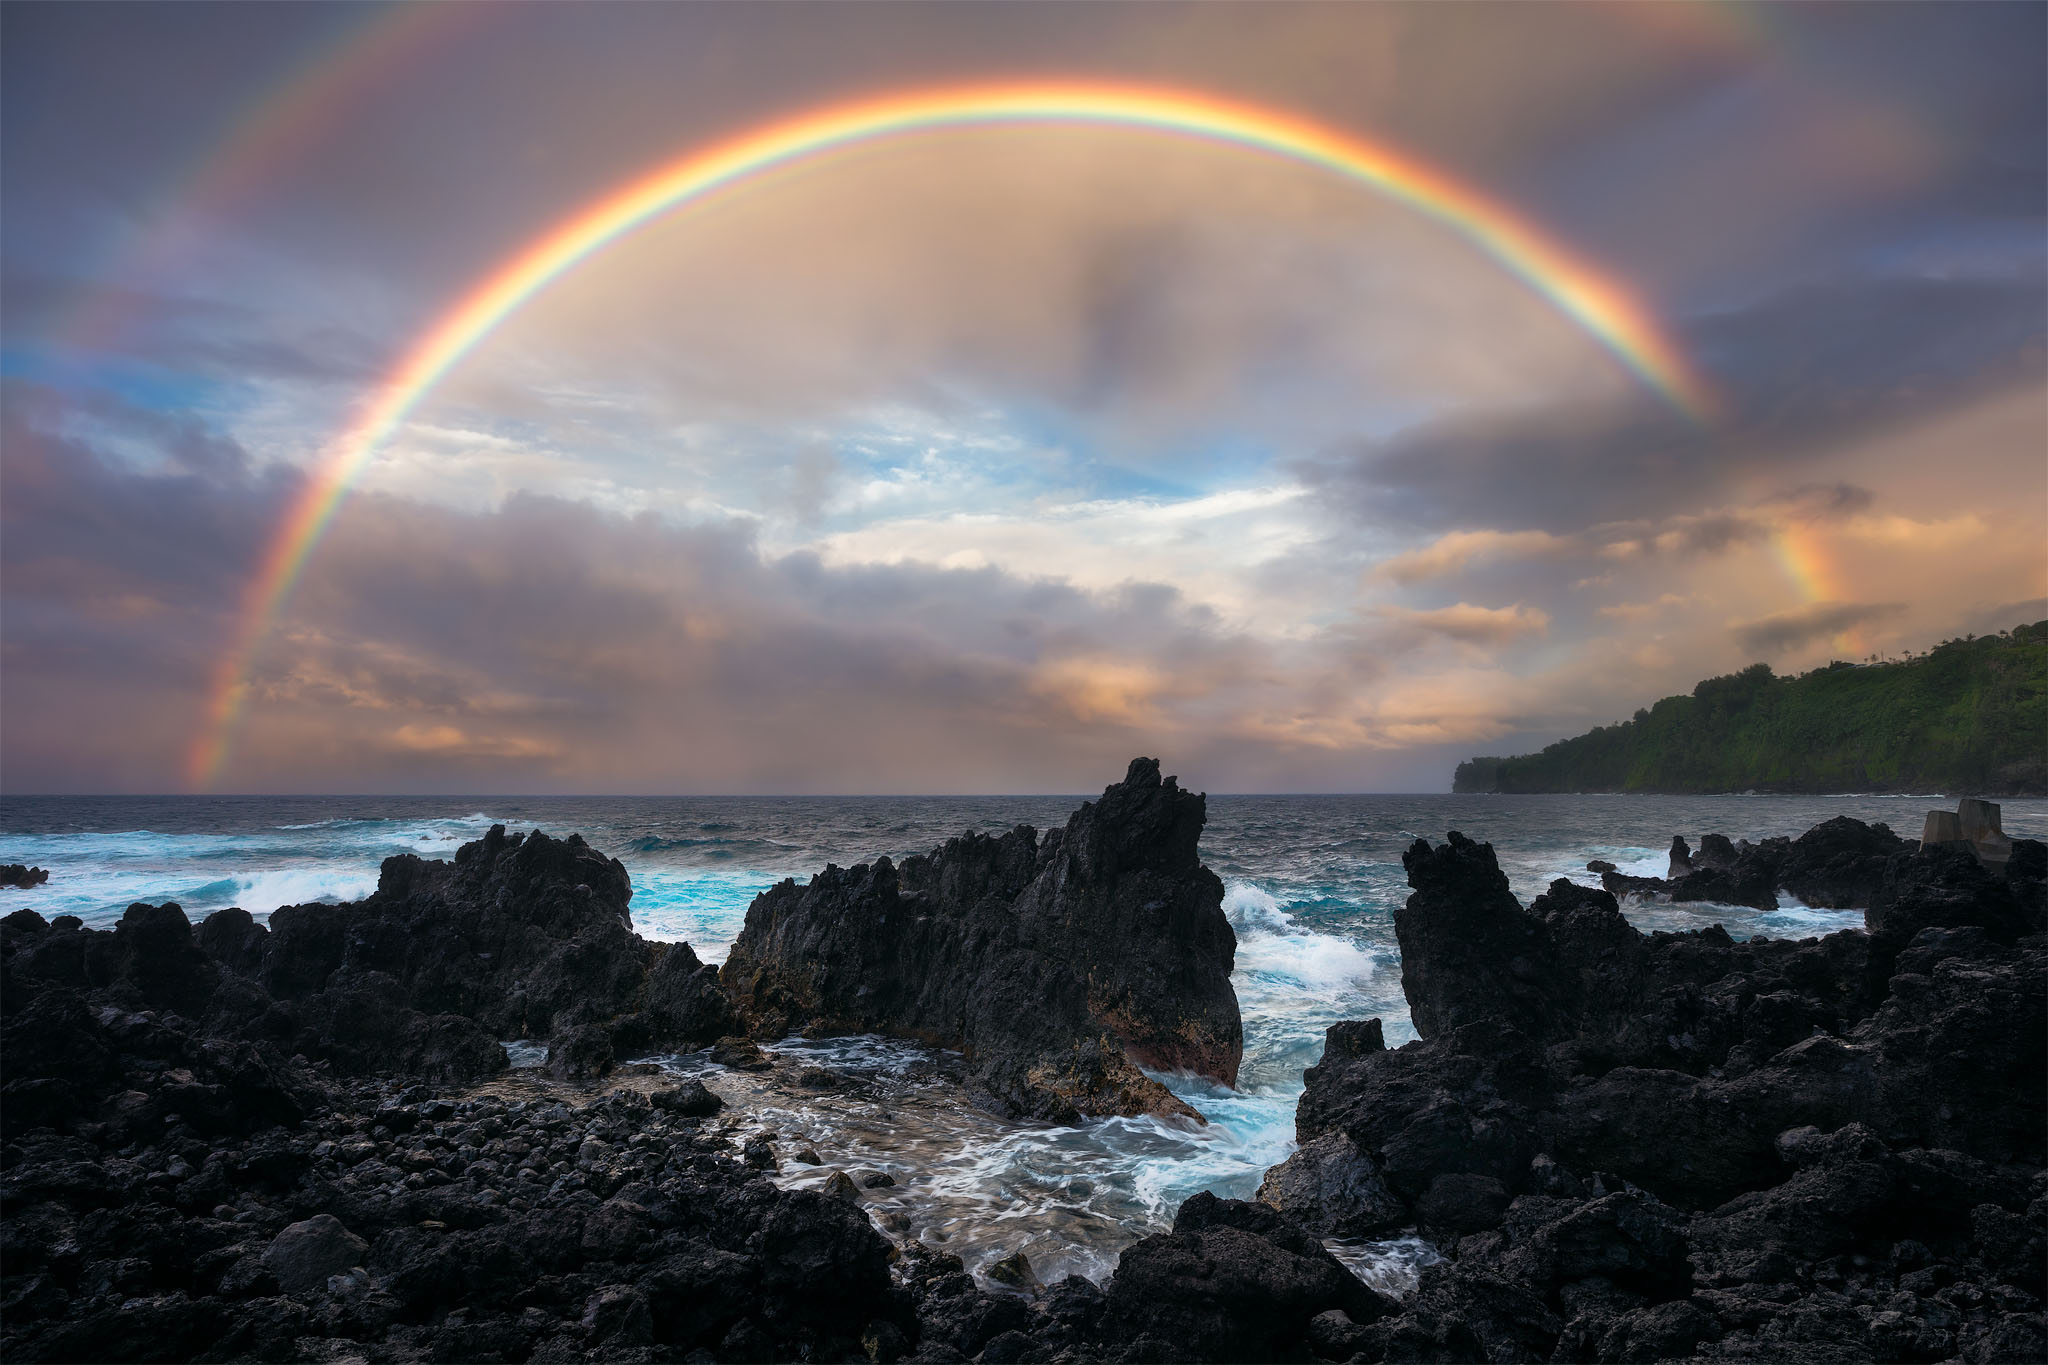 Laupahoehoe, Point, coastline, rainbow, Big, Island, Hawaii, turquoise, ocean, water, east side, blessed, magnificent , photo